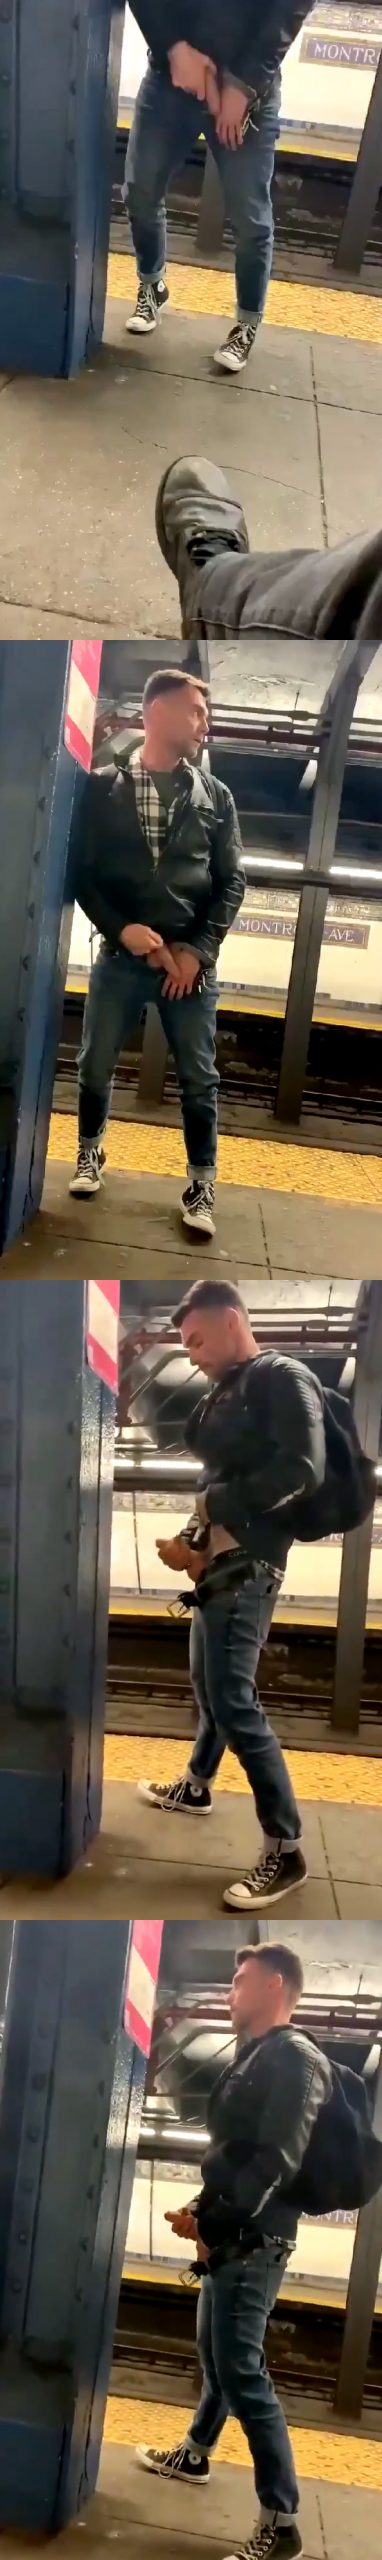 guy jerking off in public in the subway